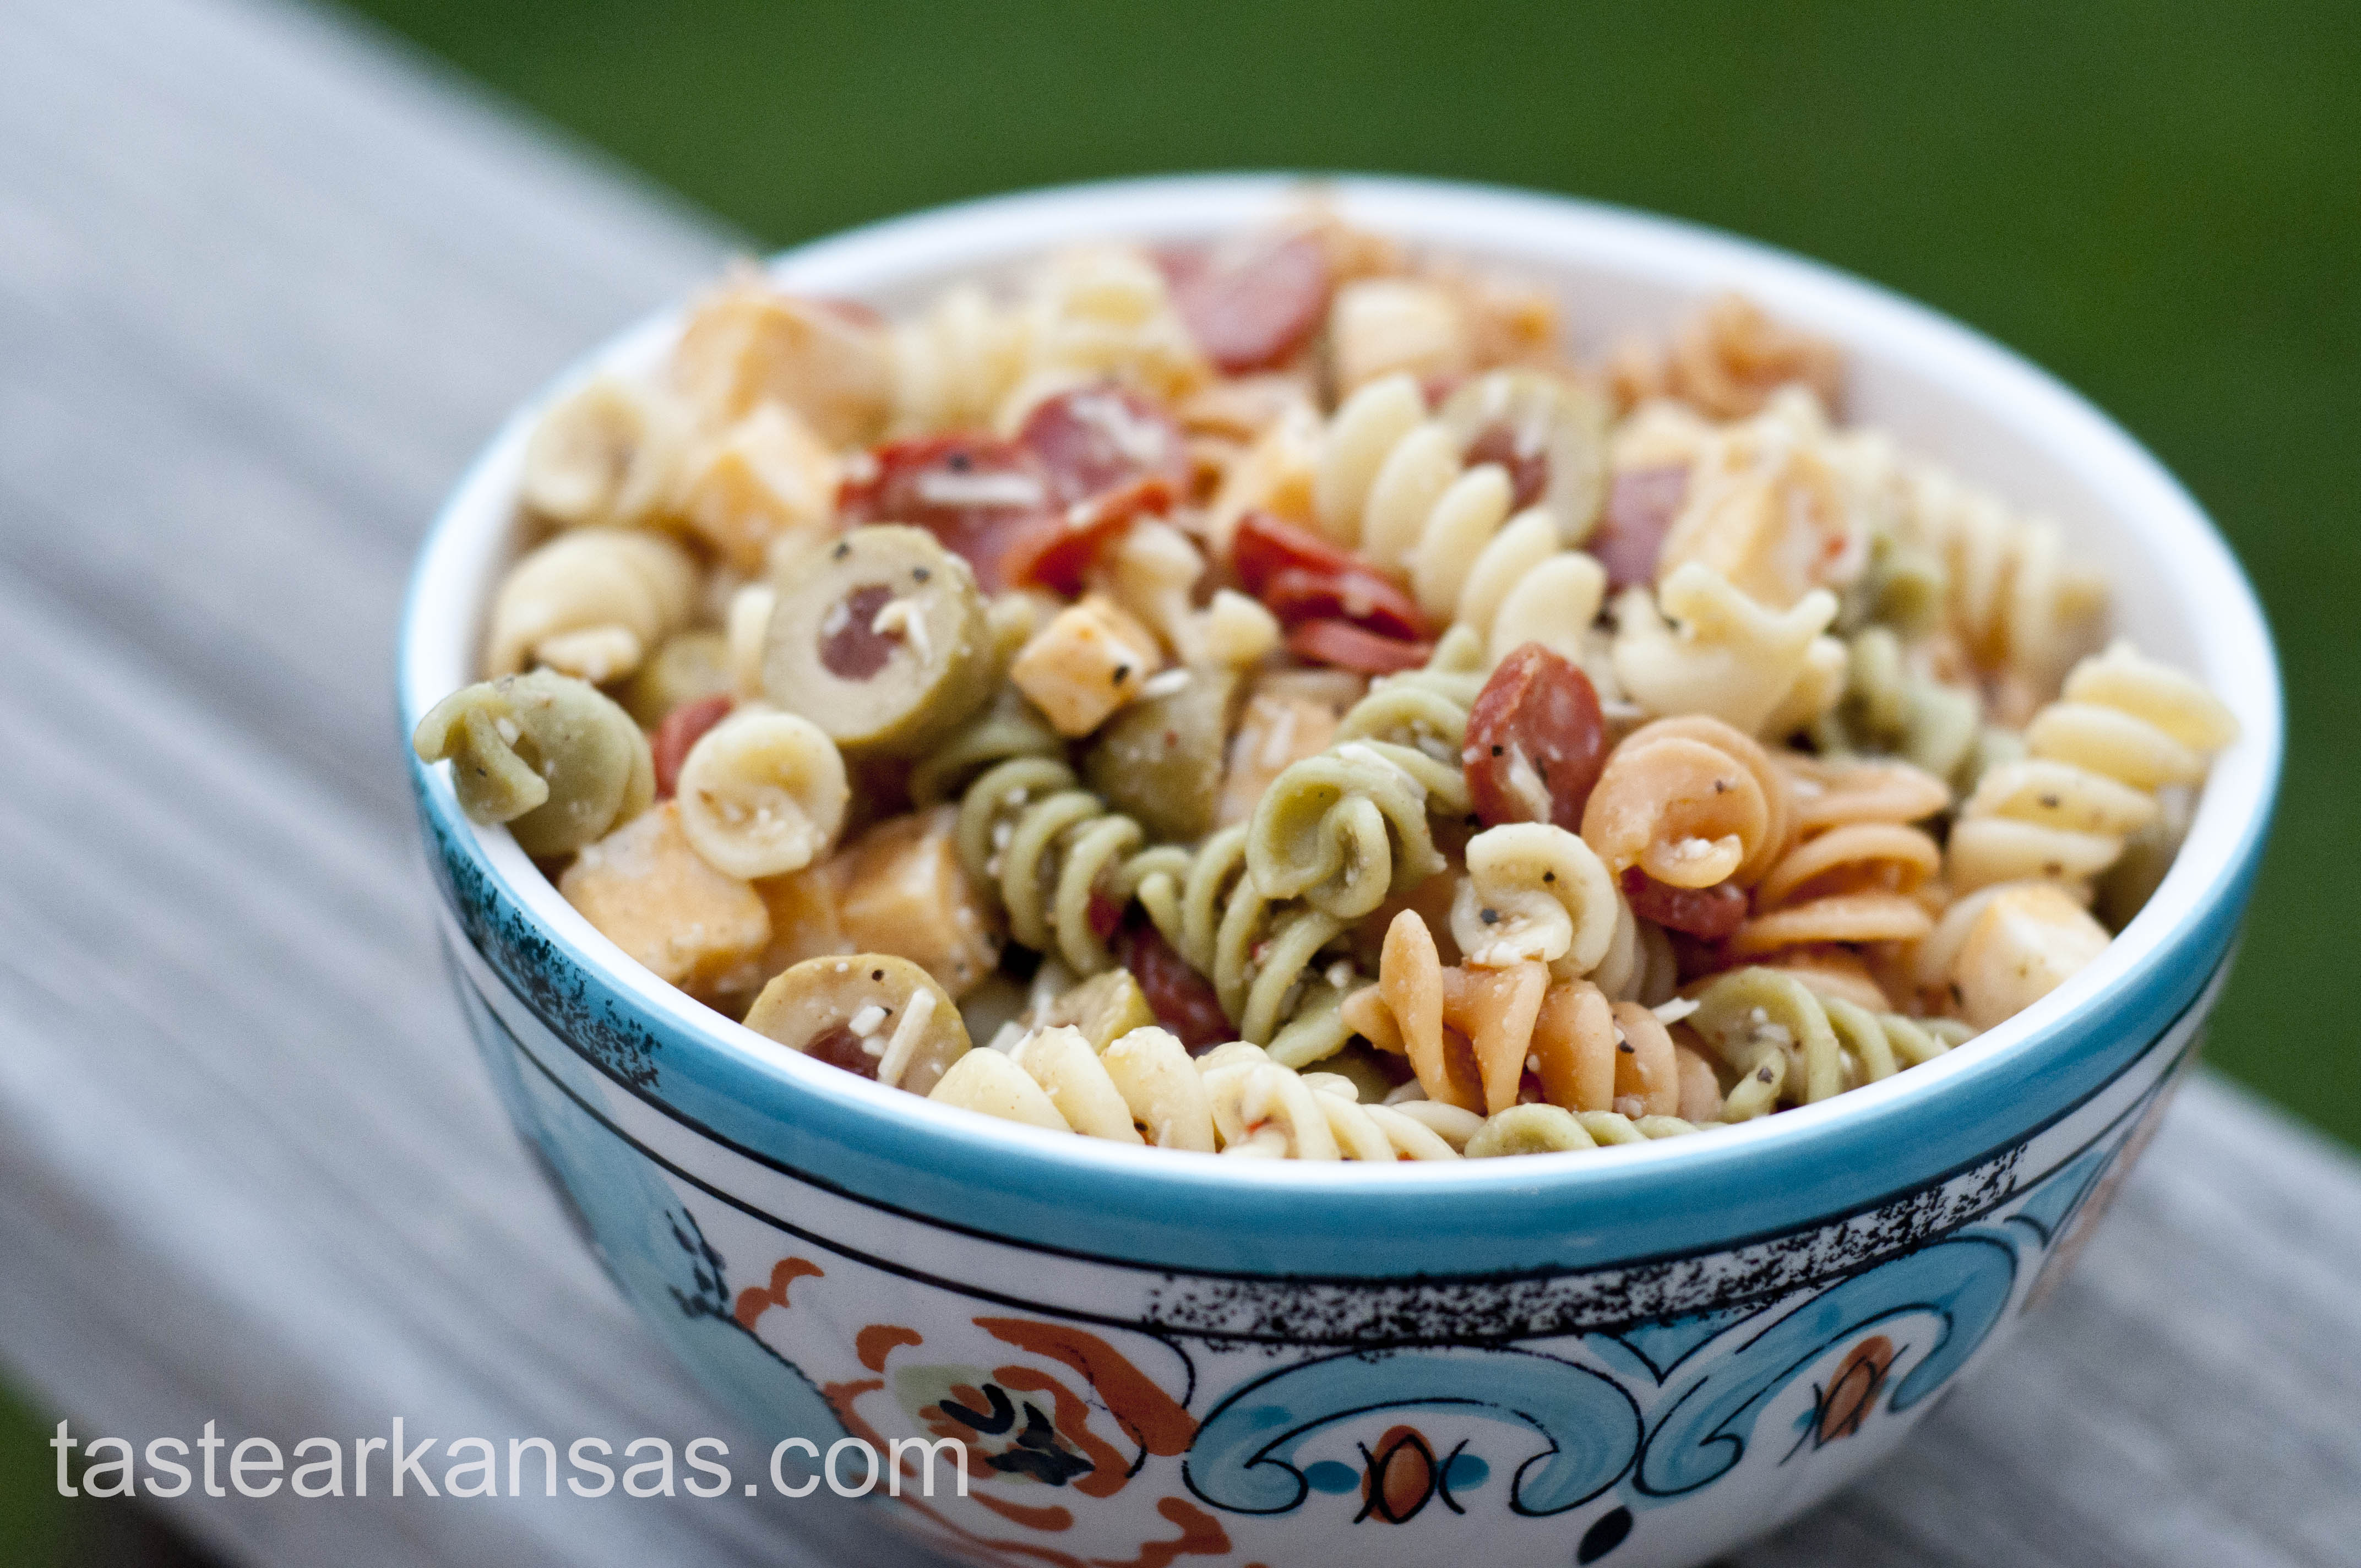 easy pasta salad taste of arkansas